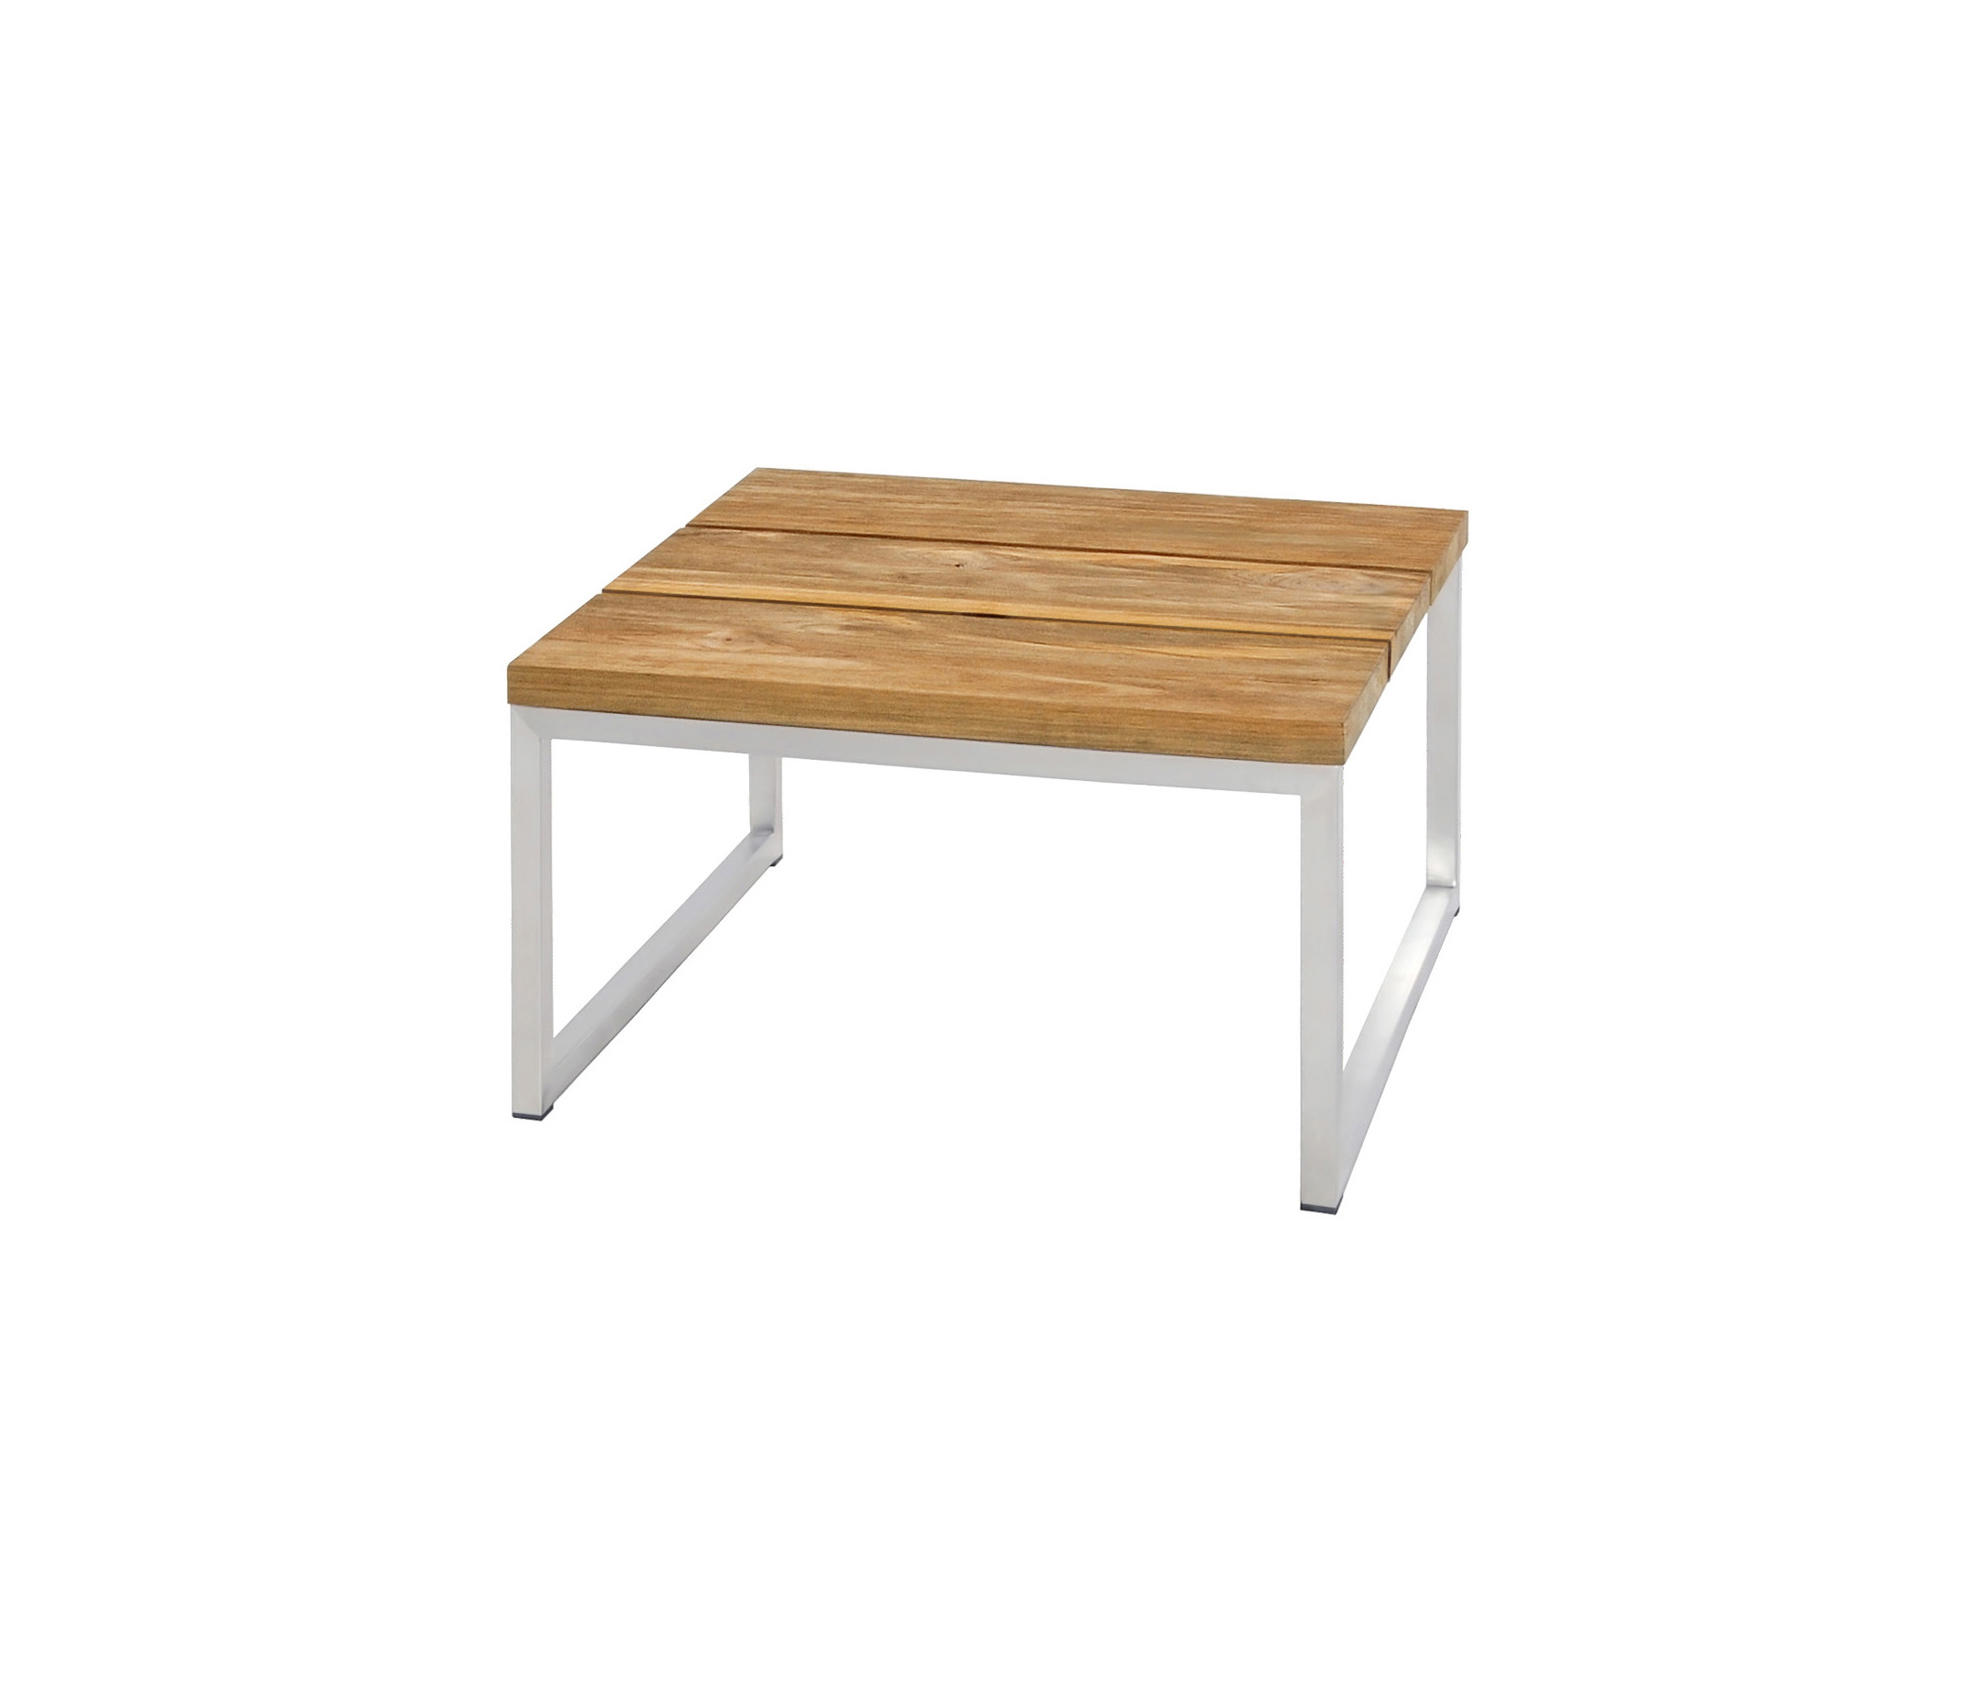 Oko side table 50x50 cm garten beistelltische von for Table 50x50